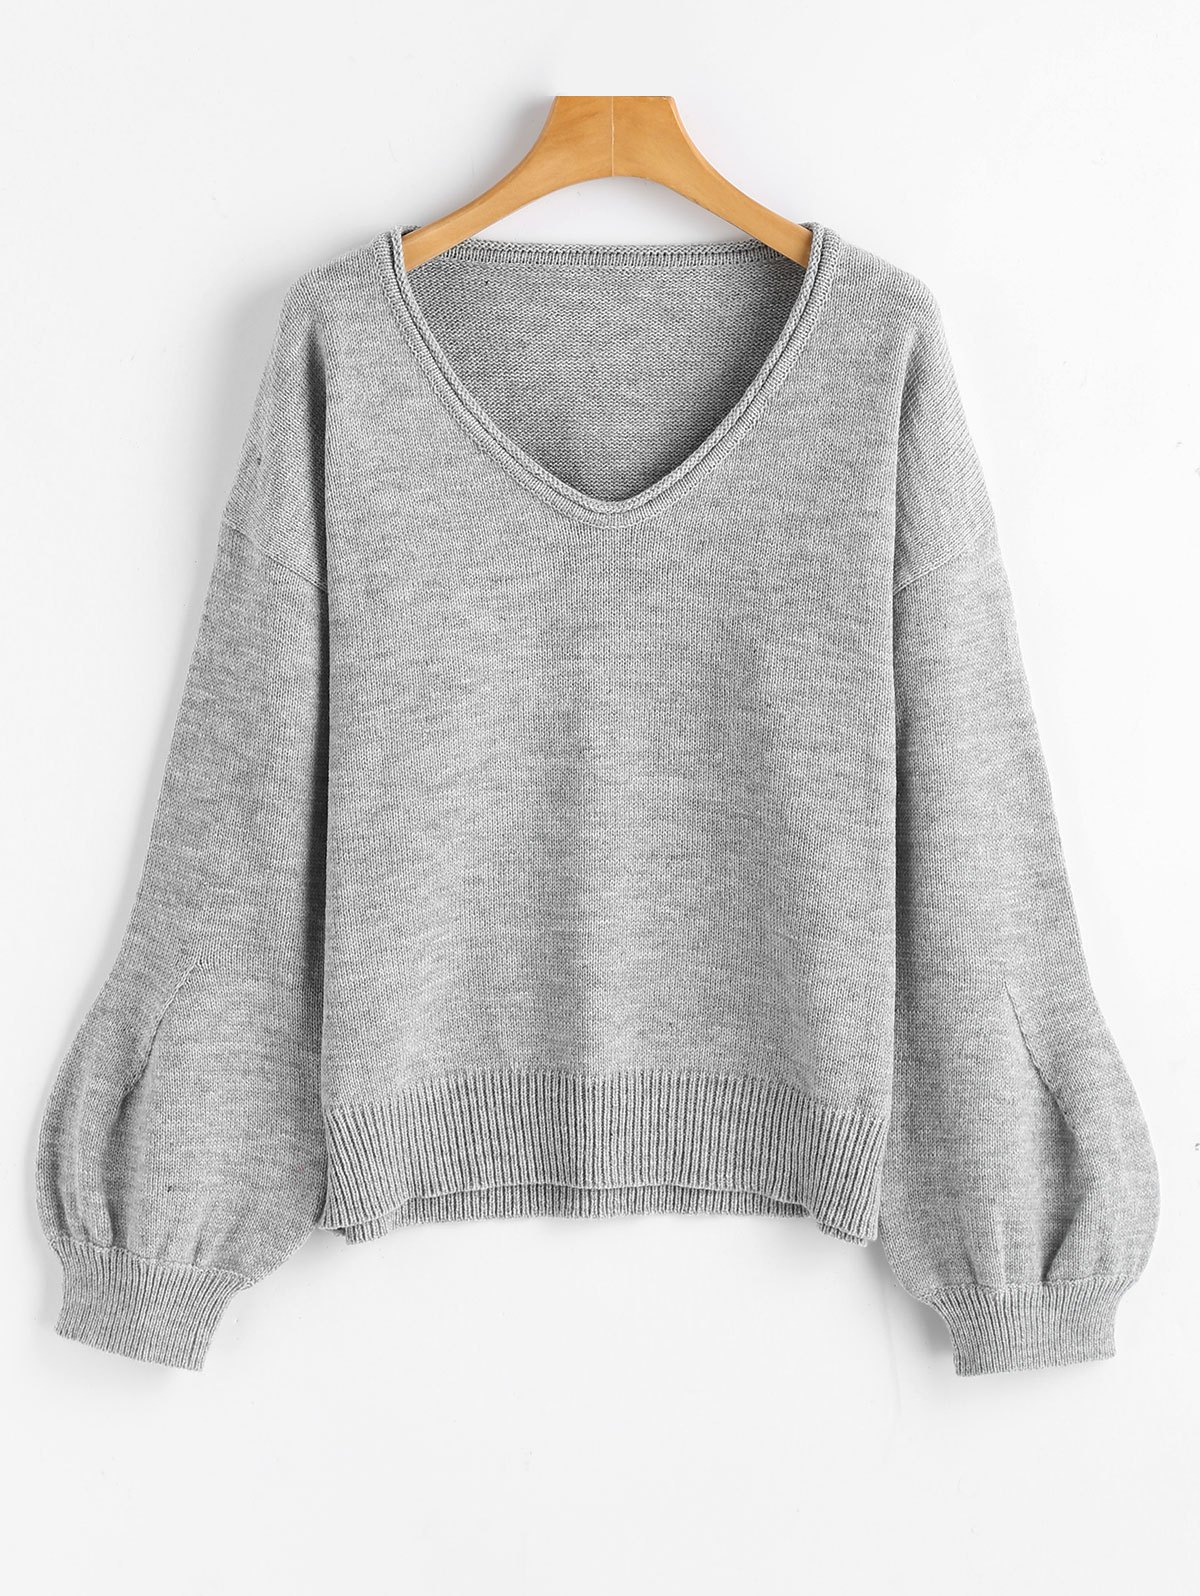 V Neck Lantern Sleeve Oversized SweaterWOMEN<br><br>Size: ONE SIZE; Color: GRAY; Type: Pullovers; Material: Acrylic,Cotton,Polyester; Sleeve Length: Full; Collar: V-Neck; Style: Fashion; Pattern Type: Solid; Weight: 0.5000kg; Package Contents: 1 x Sweater;